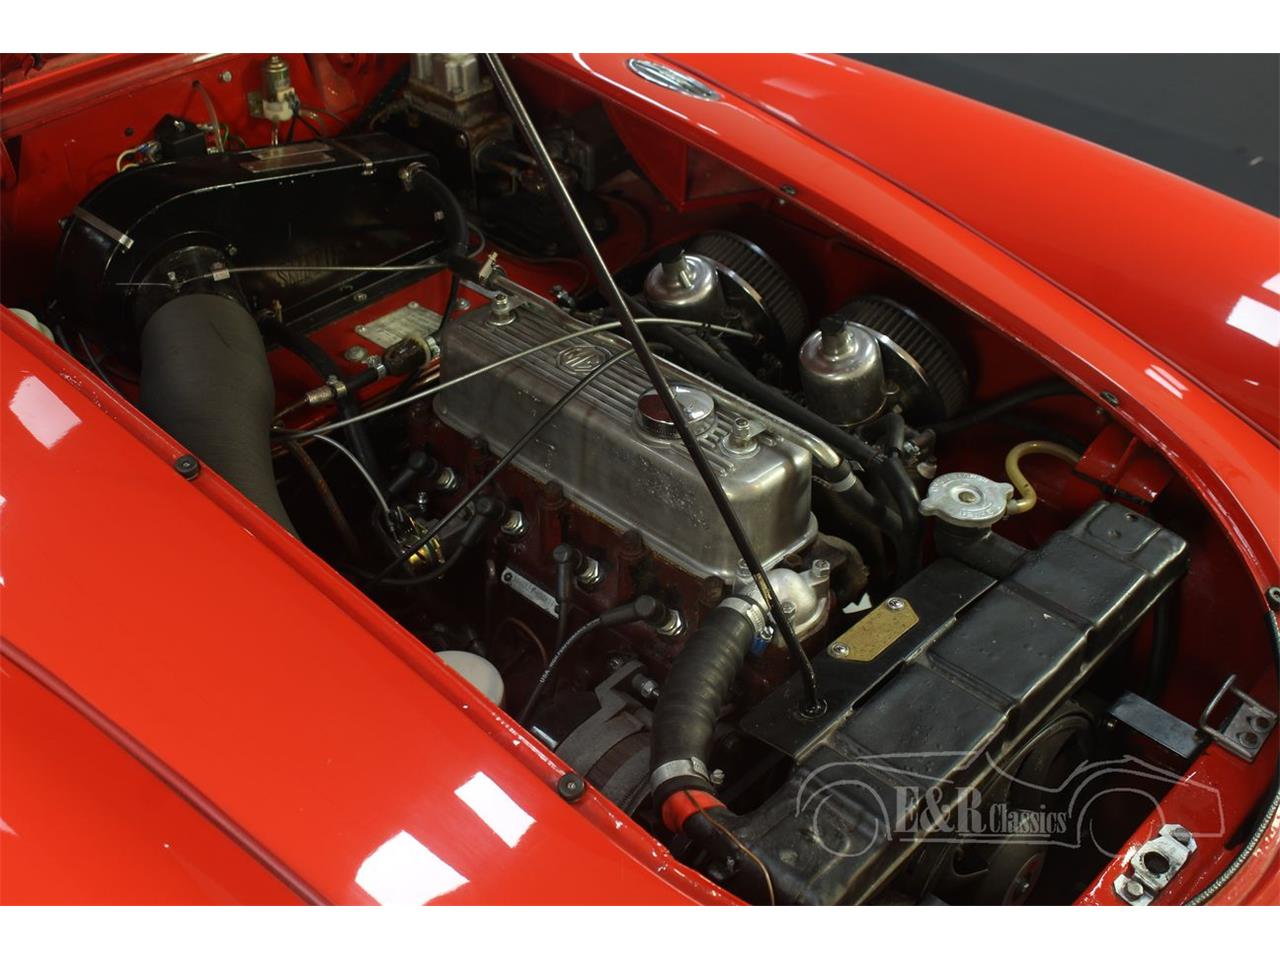 Large Picture of 1962 MGA located in Waalwijk Noord-Brabant - $45,000.00 Offered by E & R Classics - QKGO